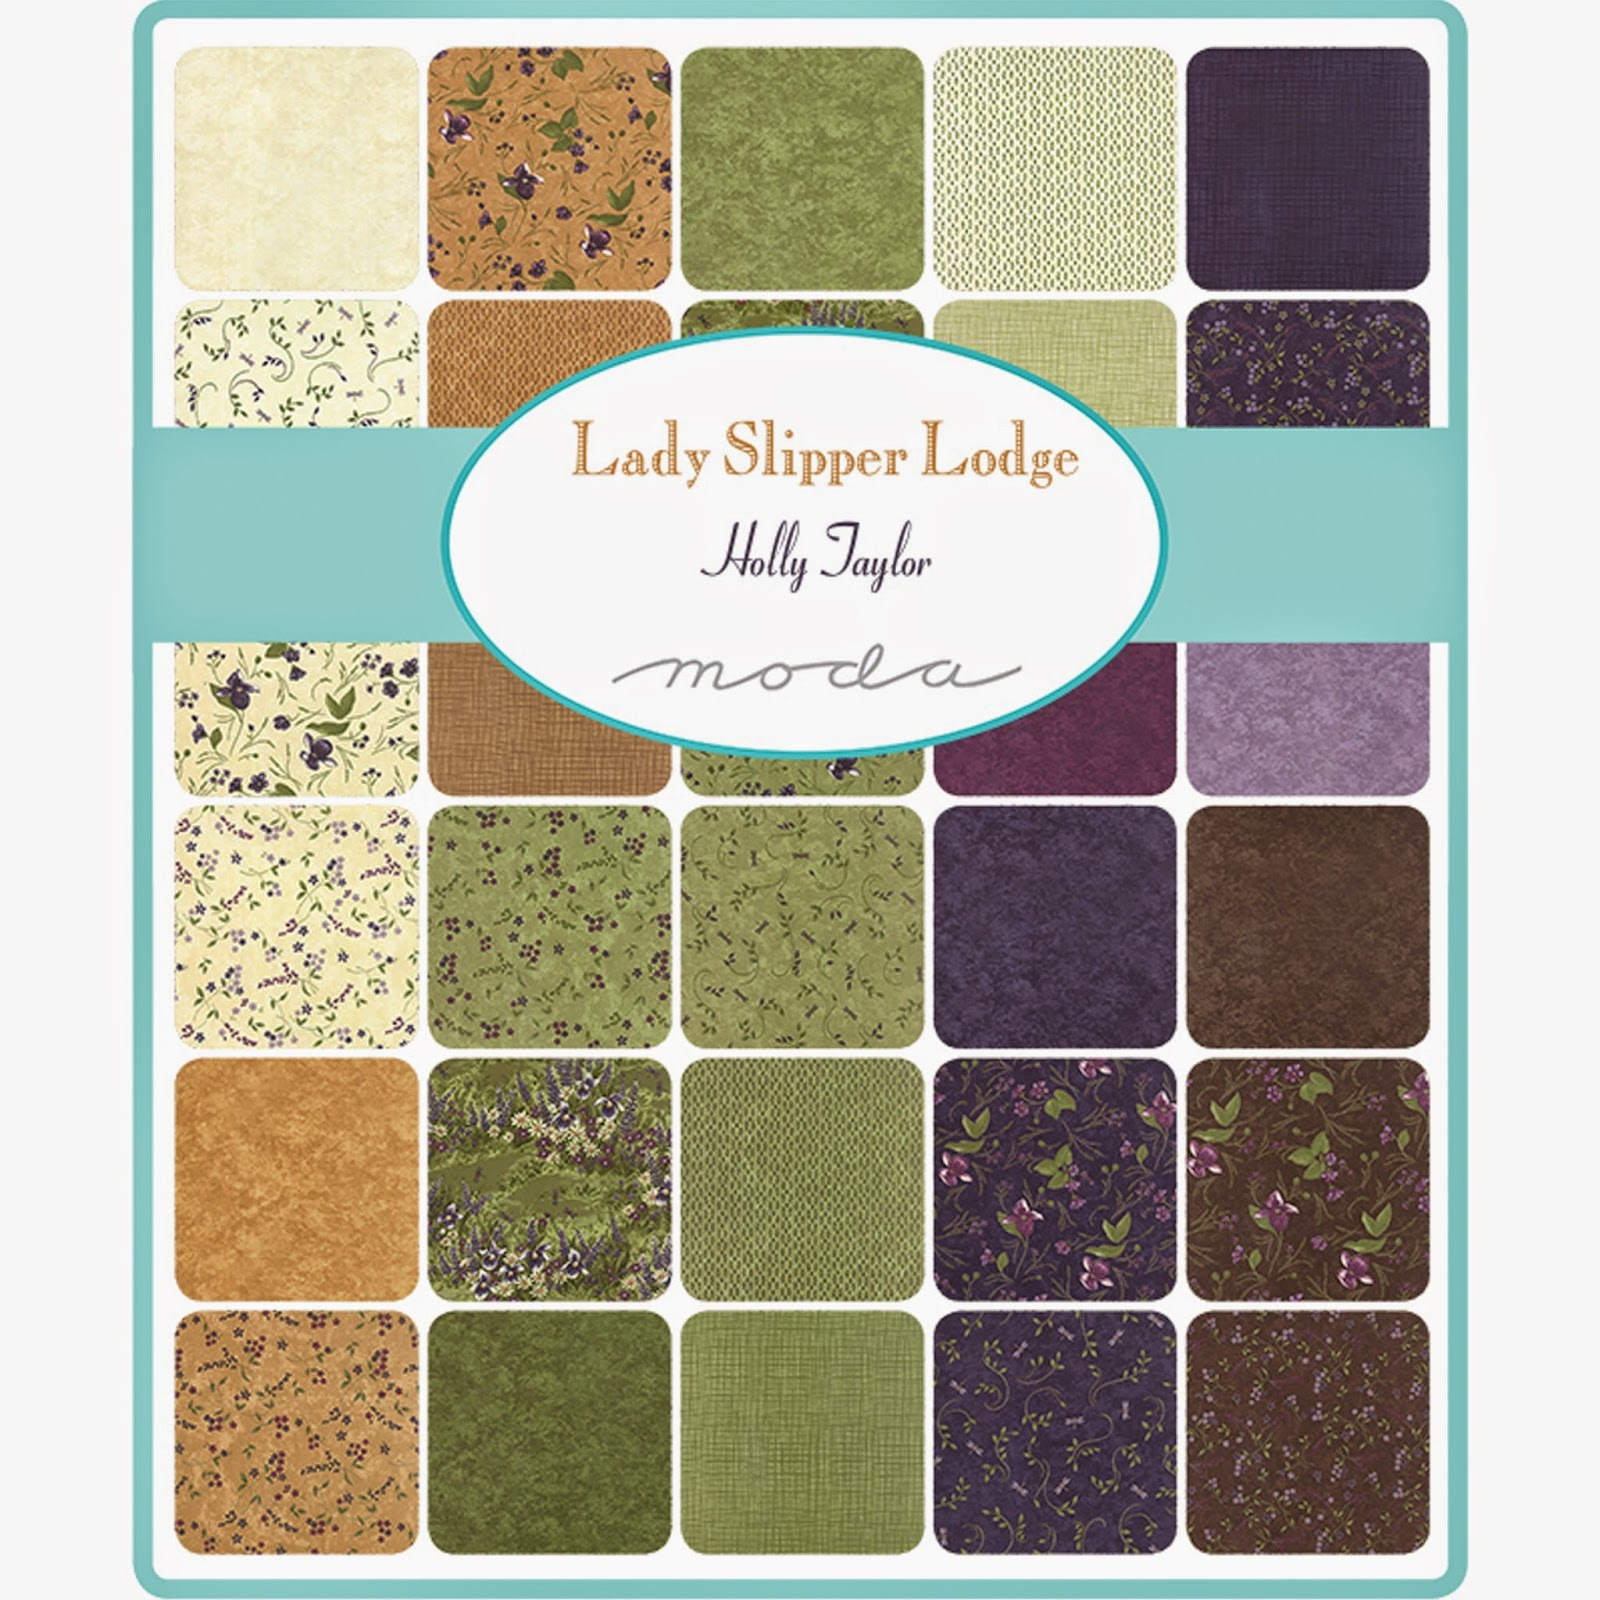 Moda LADY SLIPPER LODGE Fabric by Holly Taylor for Moda Fabrics